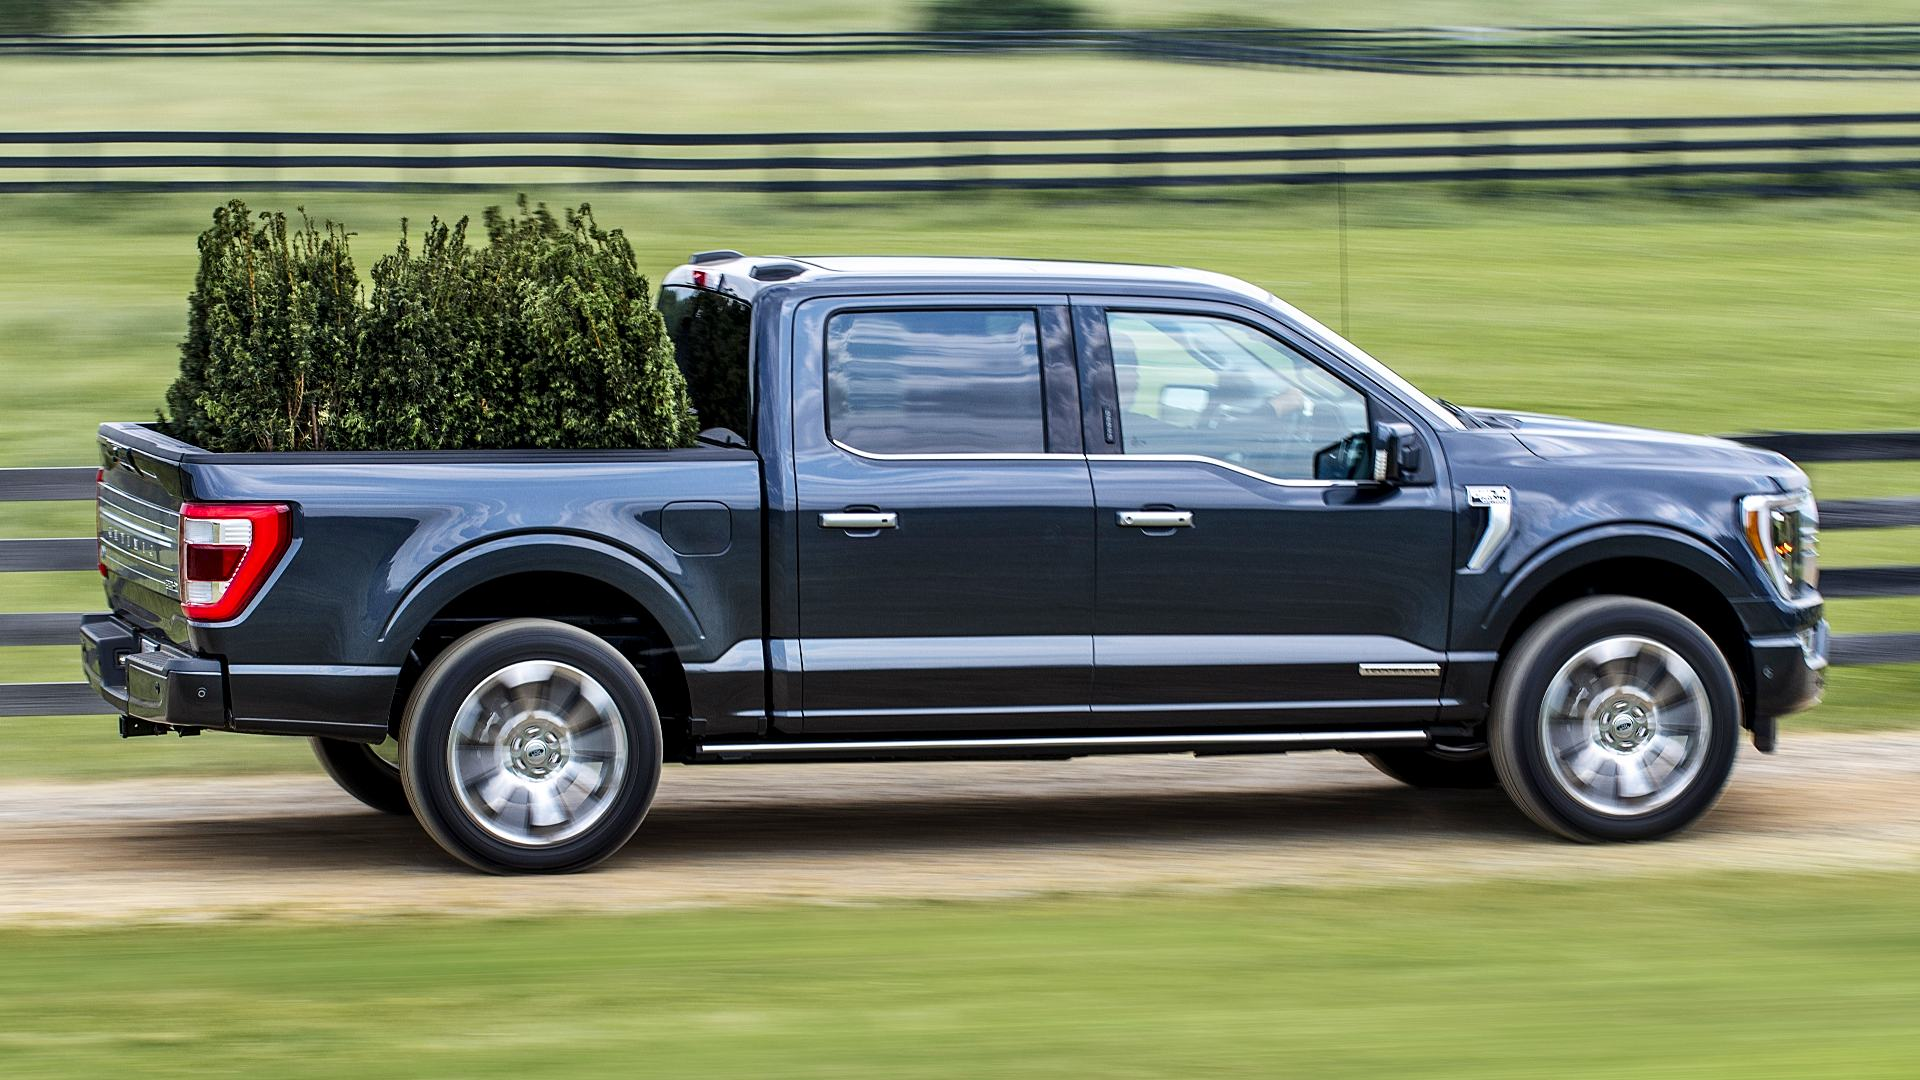 2021 Ford F150 Supercrew Limited Black